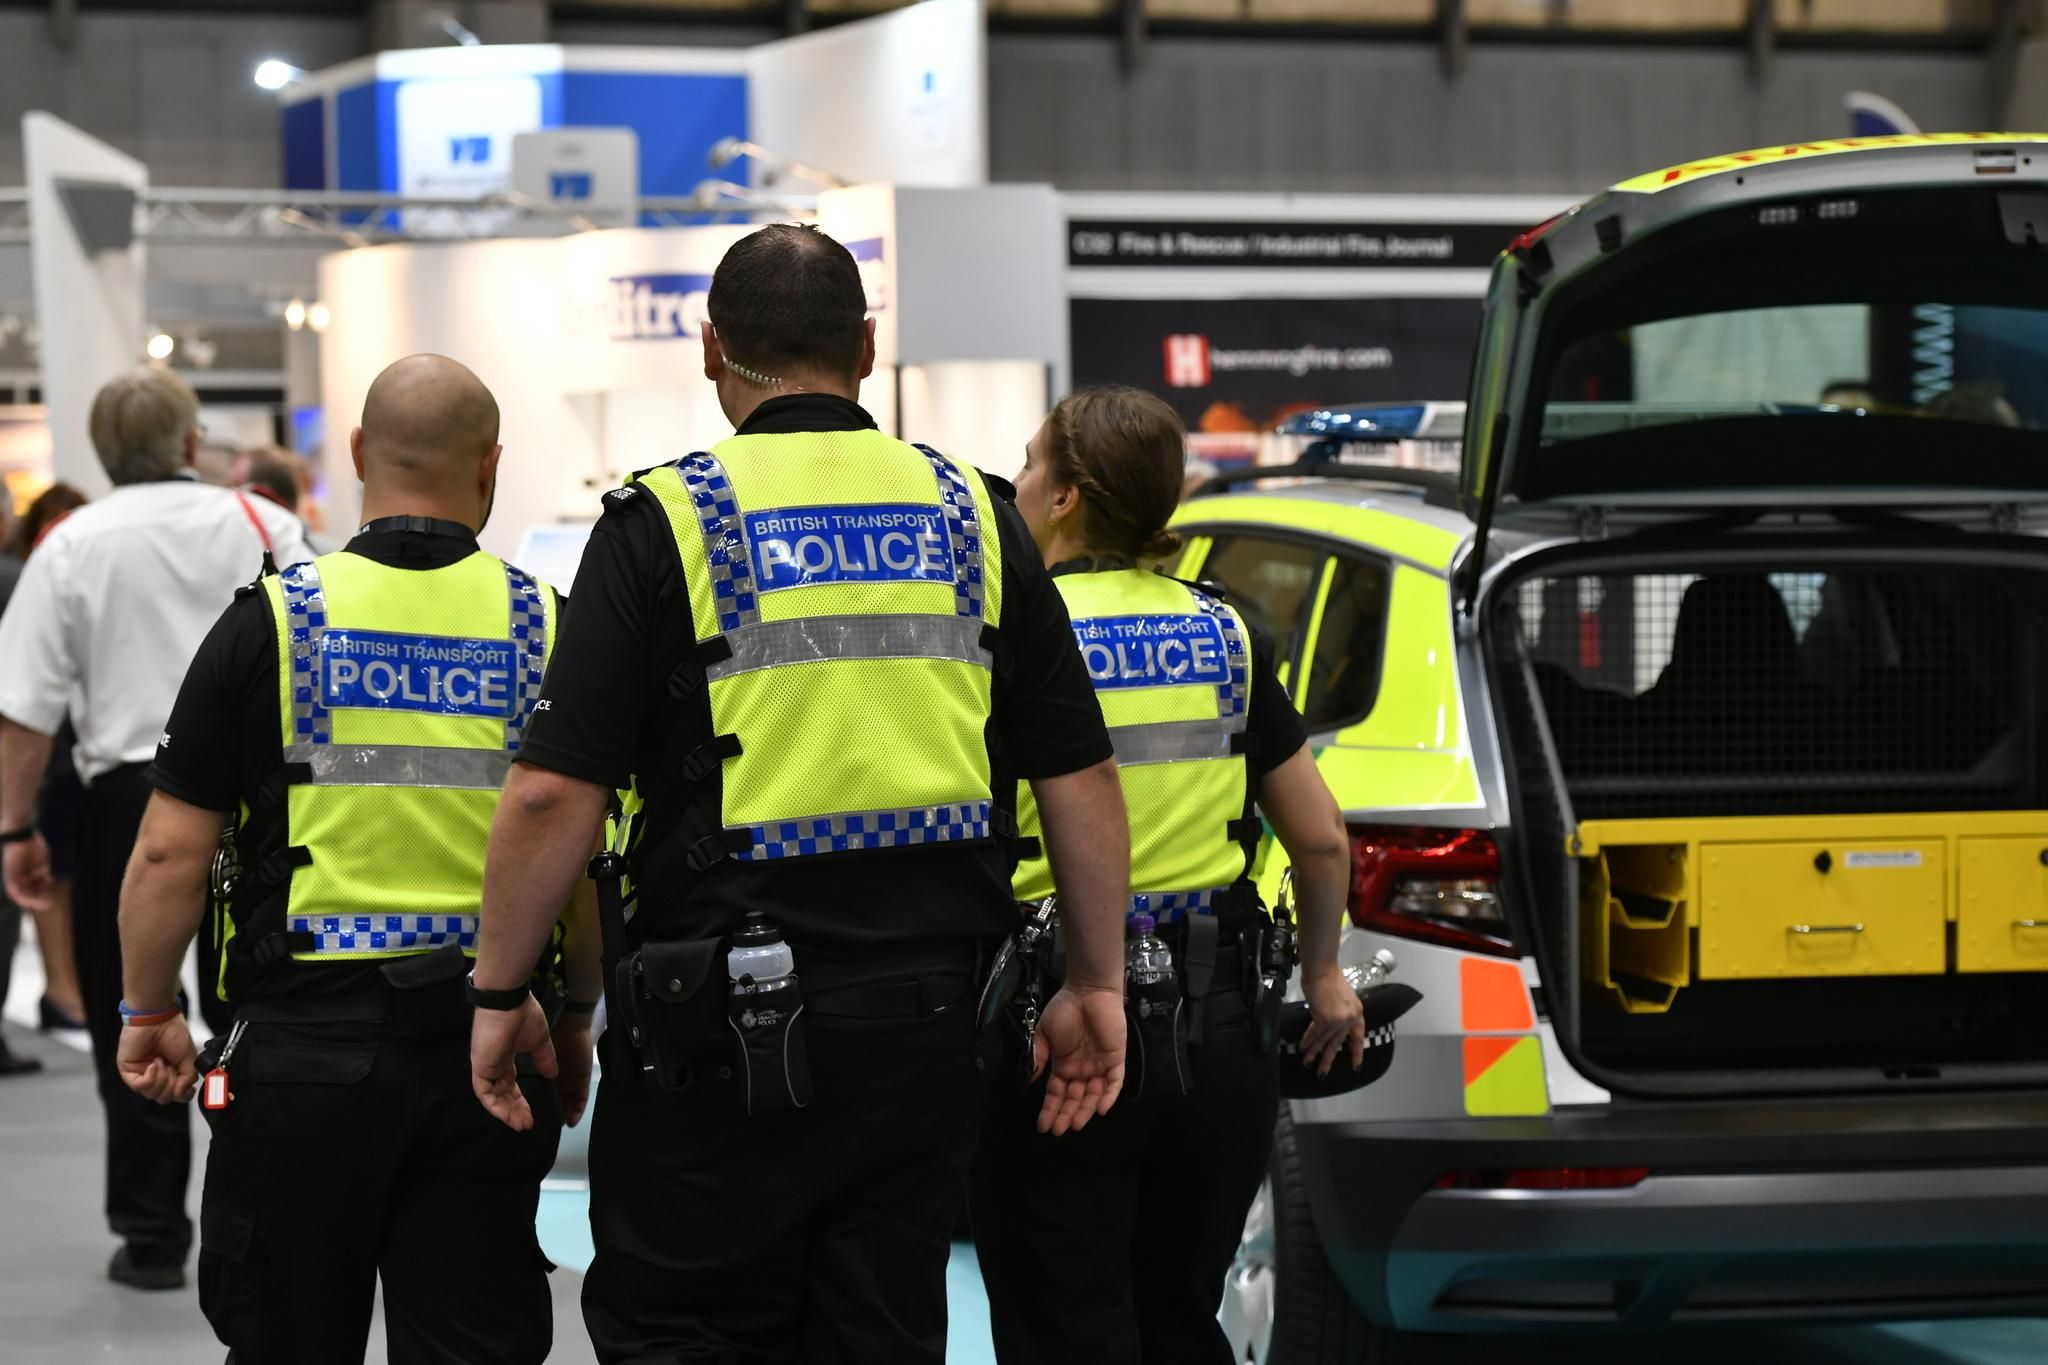 NEW FOR 2021: THE FUTURE POLICING ZONE